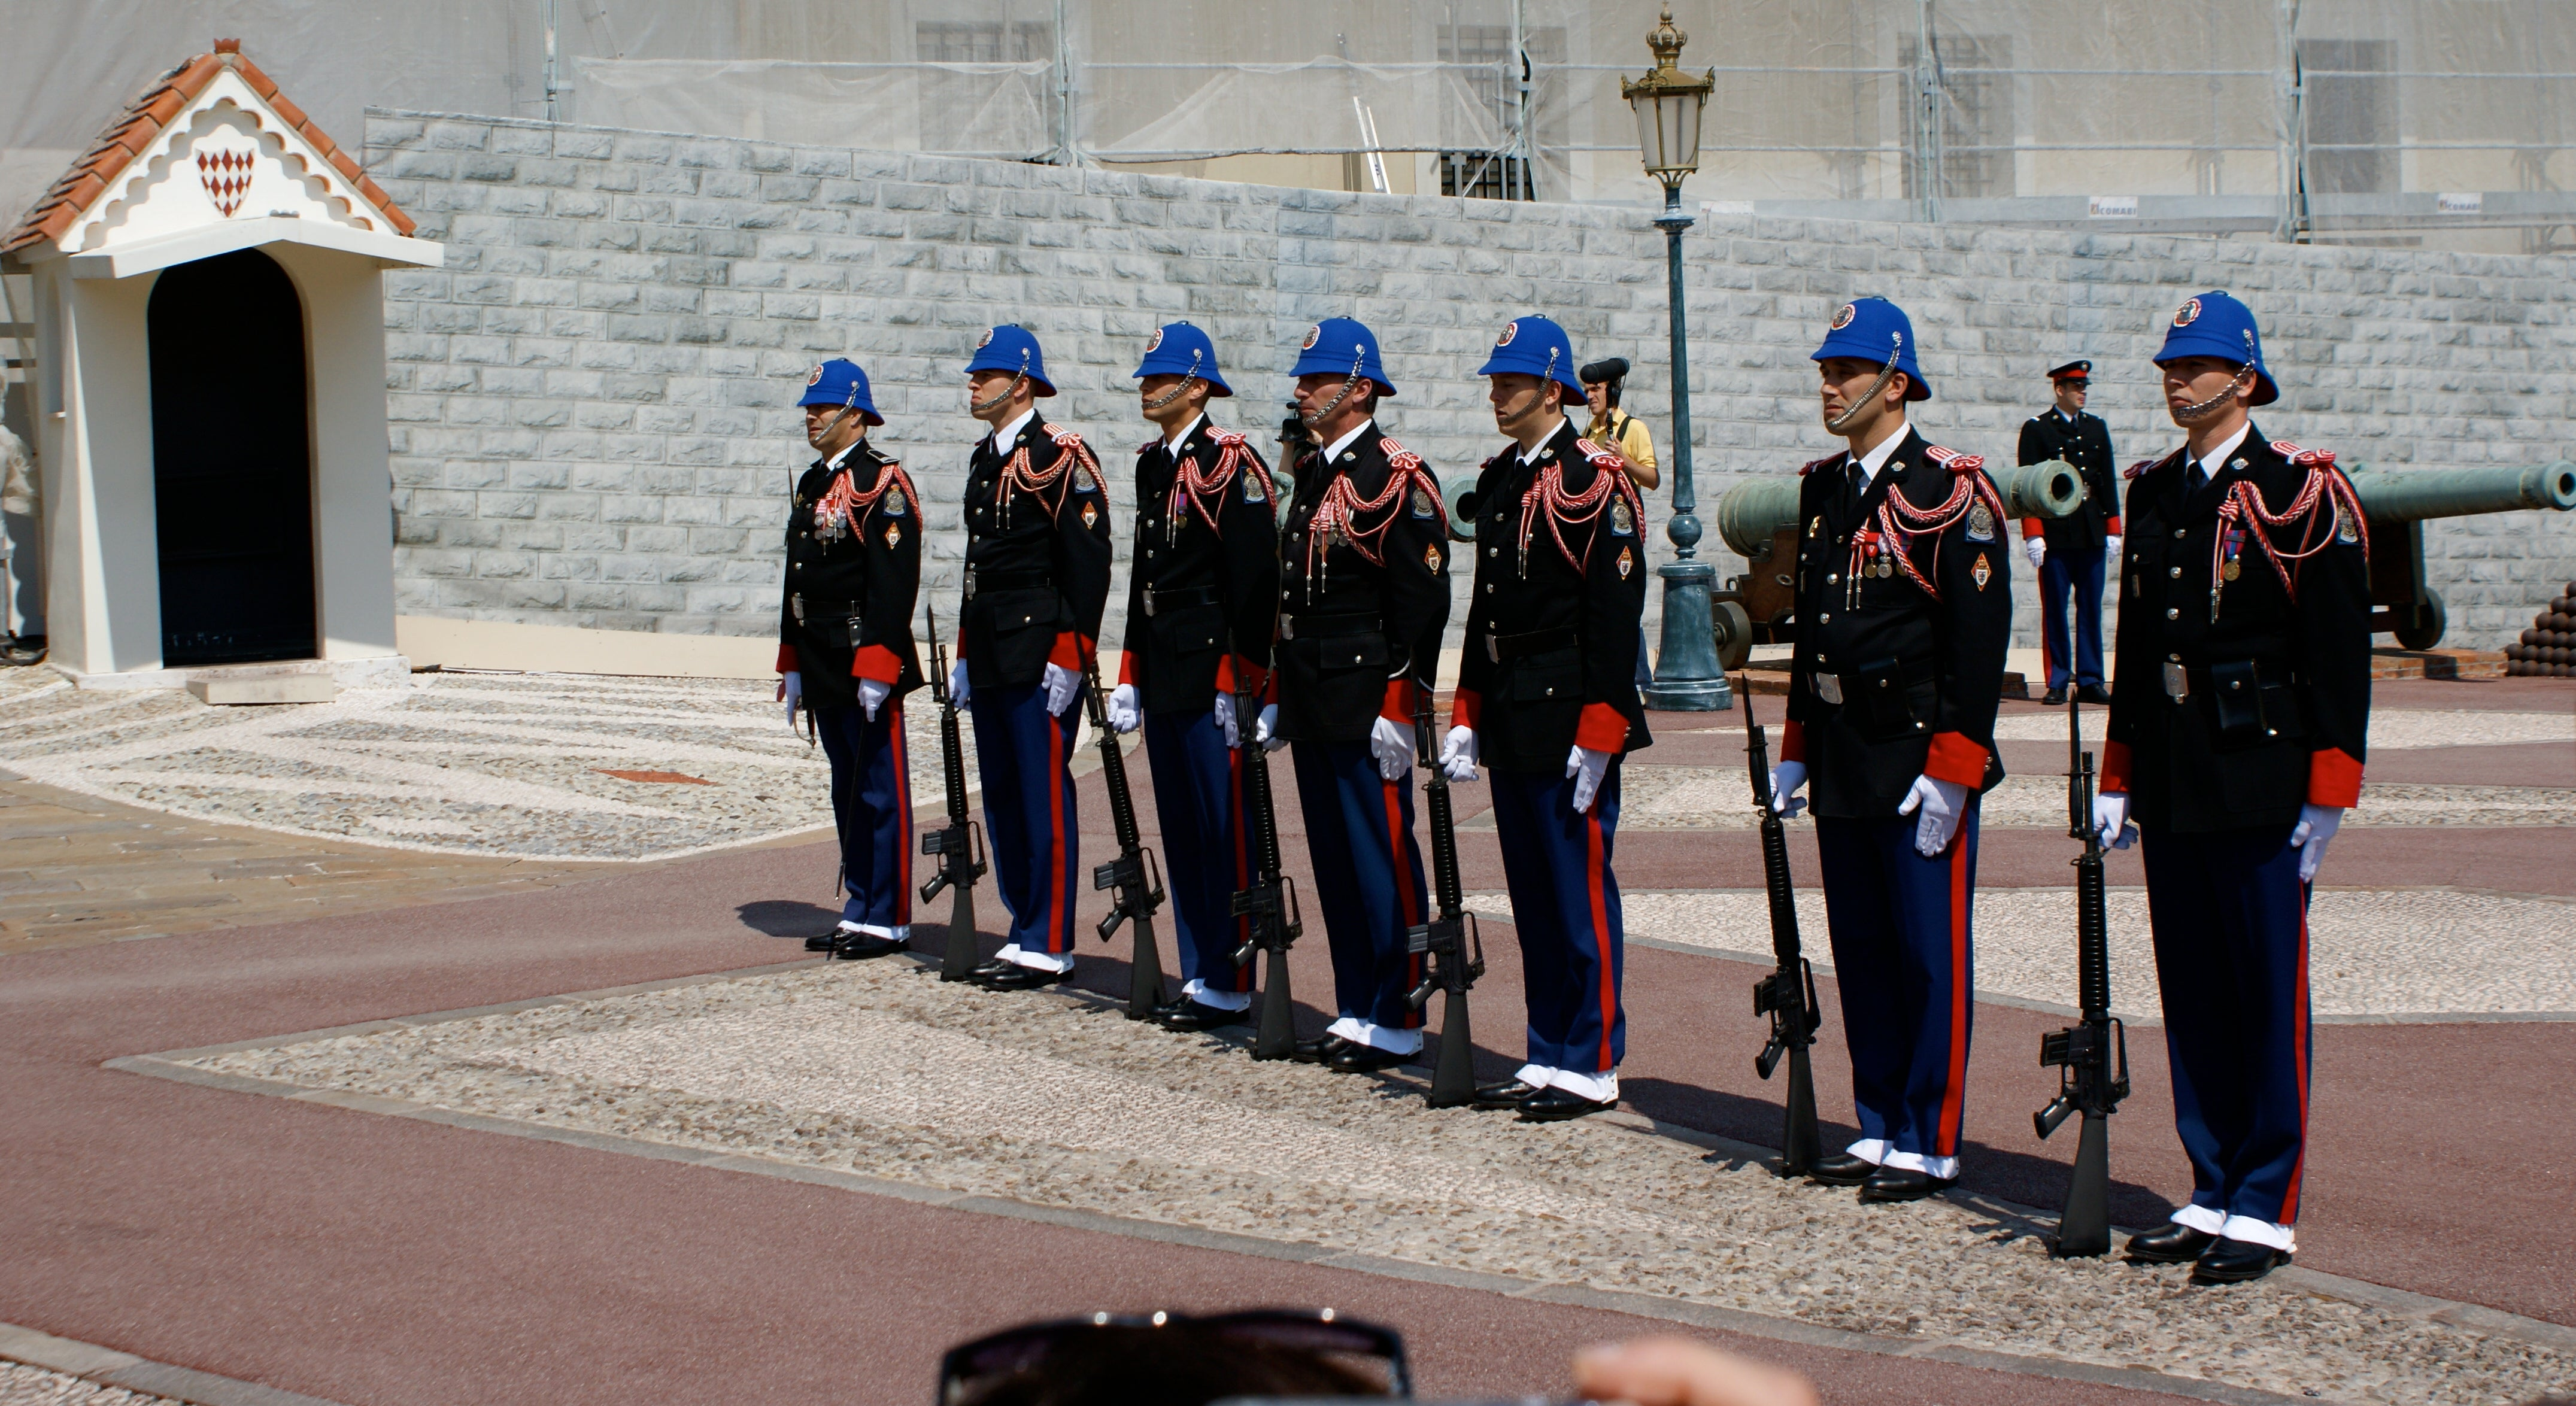 CHanging of the Guard in the Palace